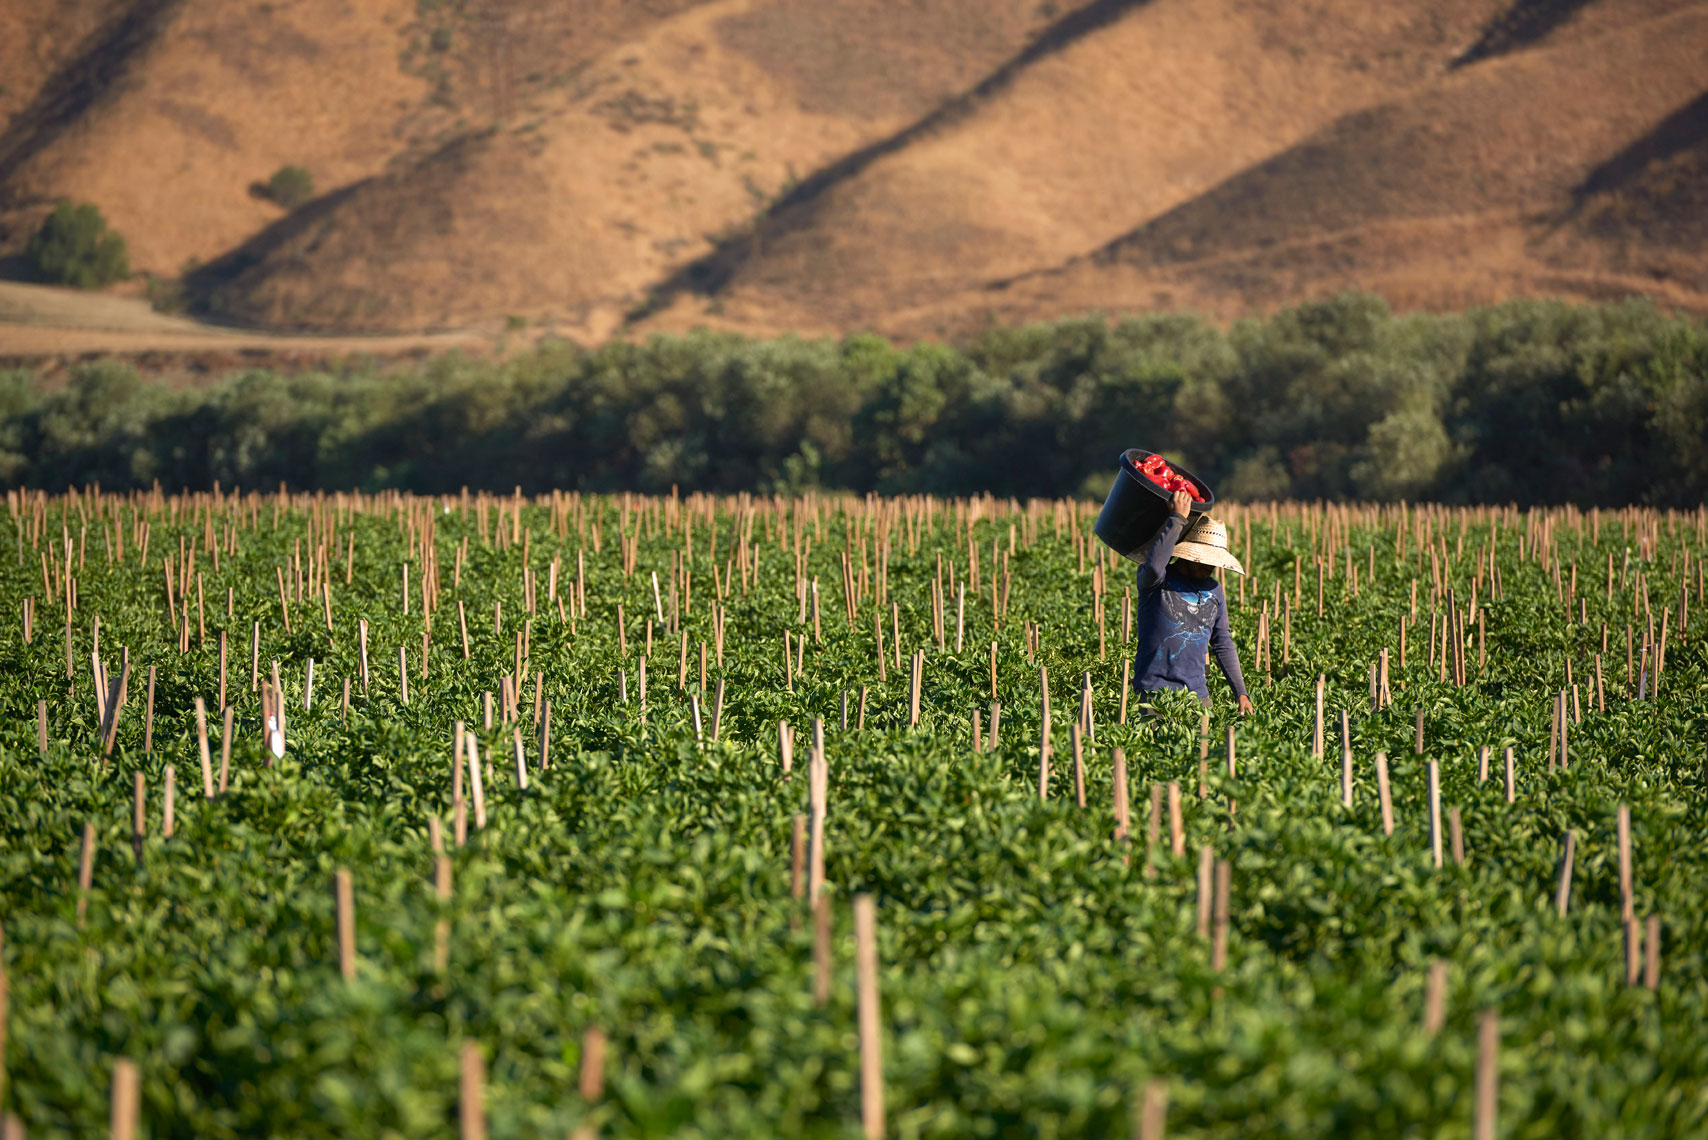 Farm-photographry-of-field-worker-carrying-bucket-of-freshly-picked-red-bell-peppers-on-the-farm